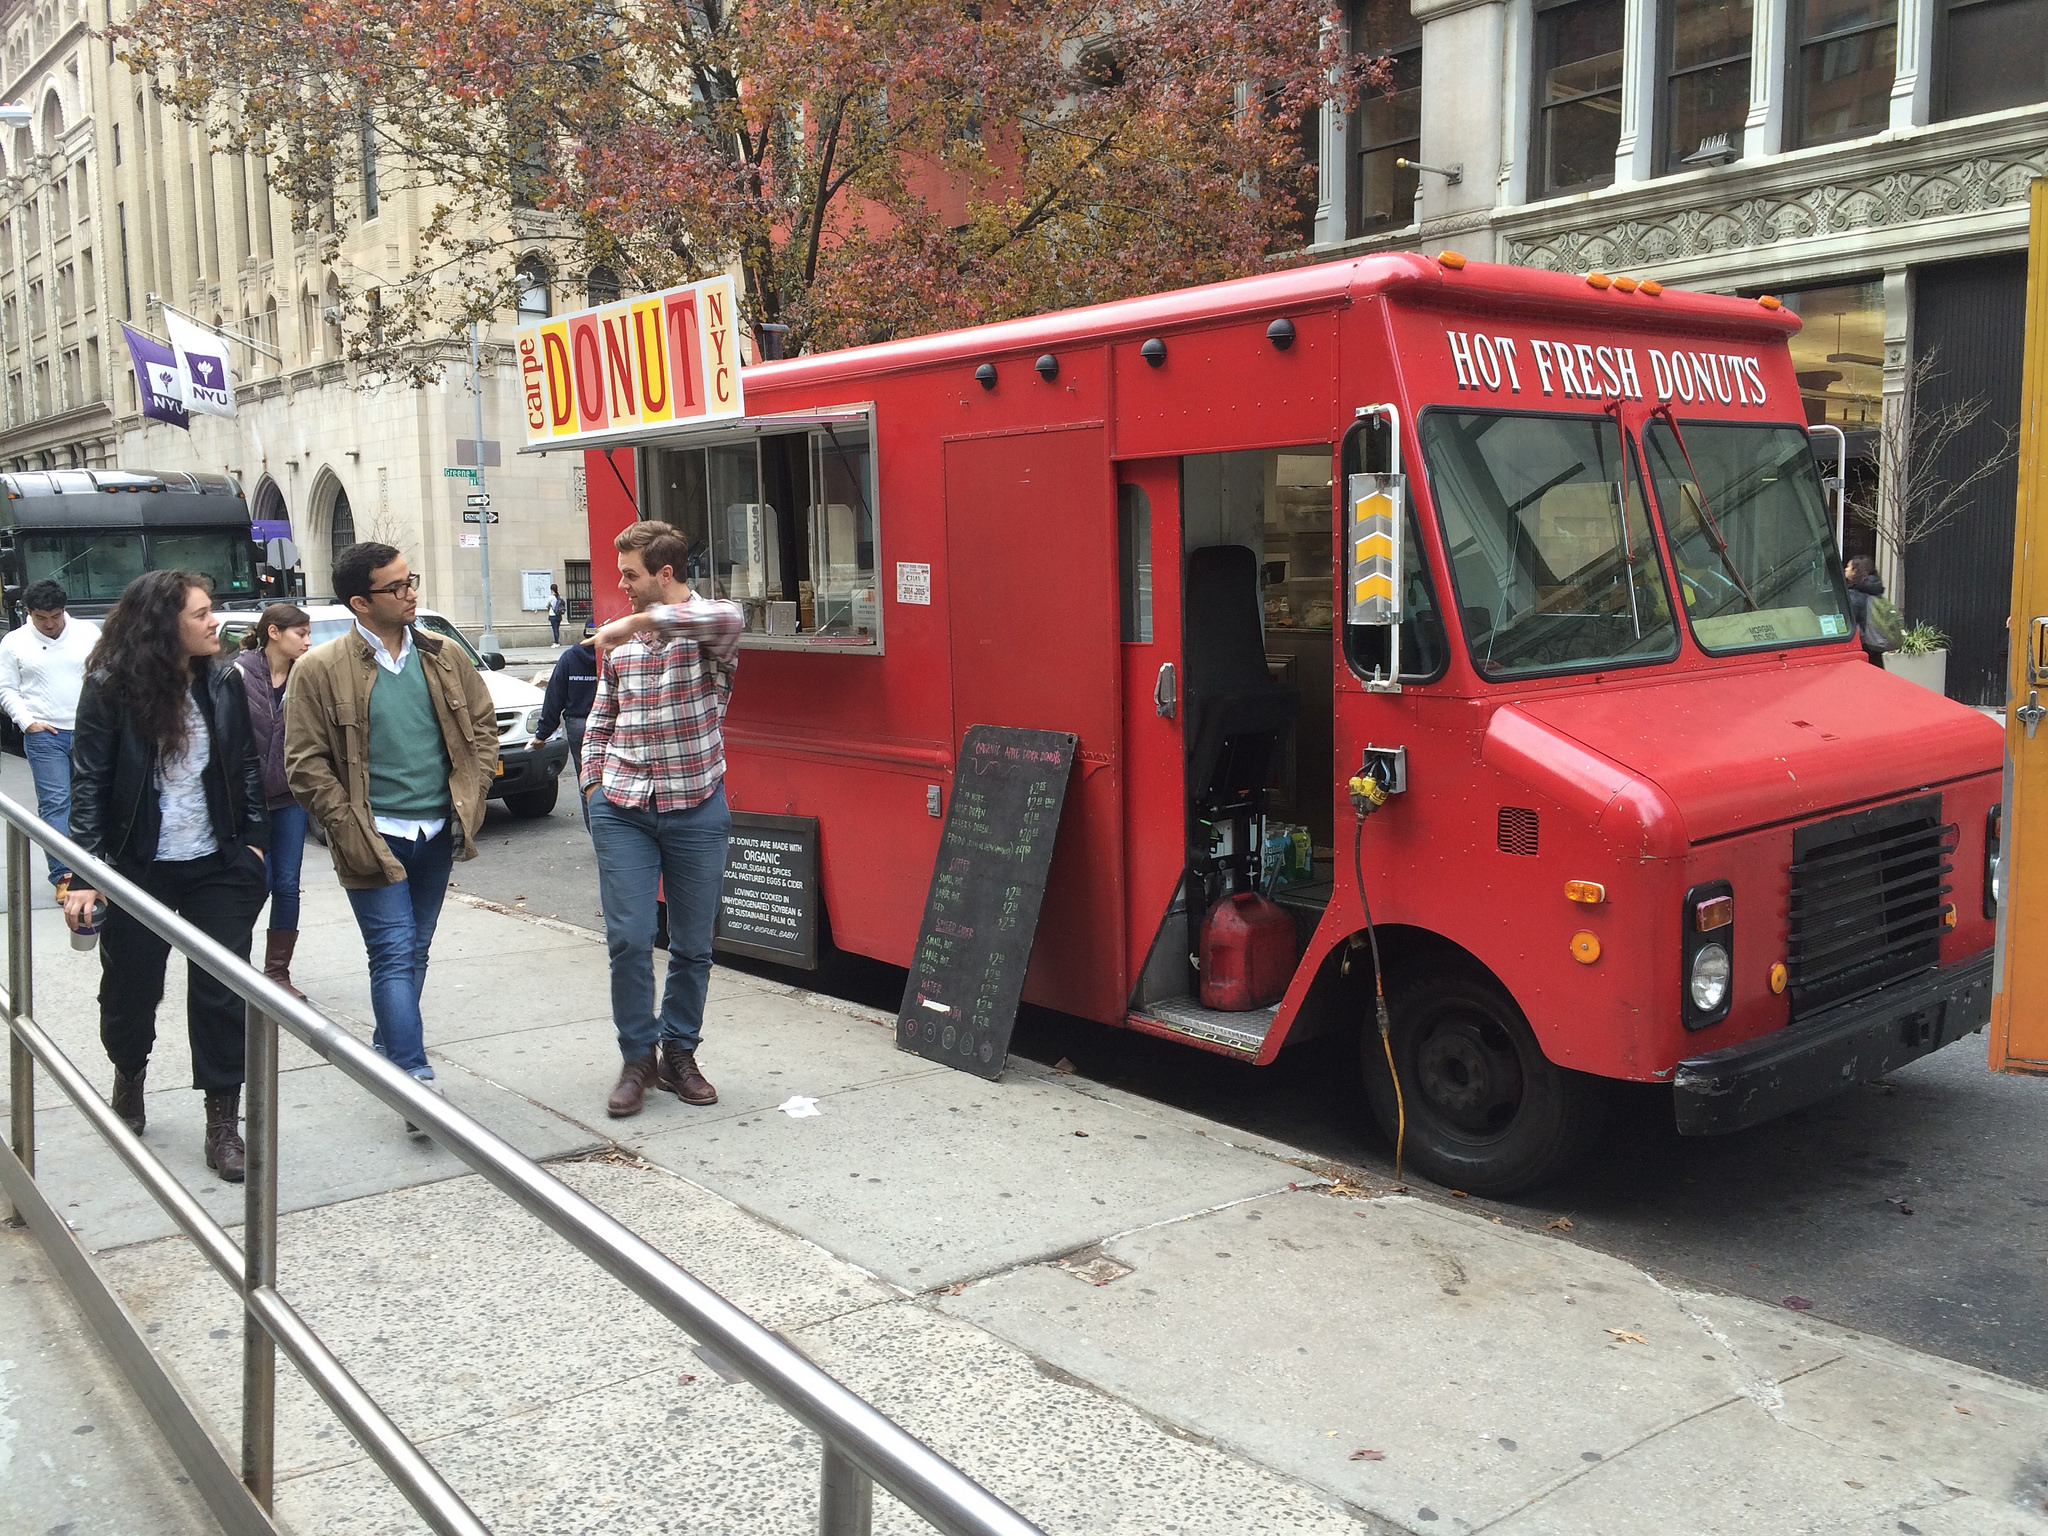 Organic donut truck in the city